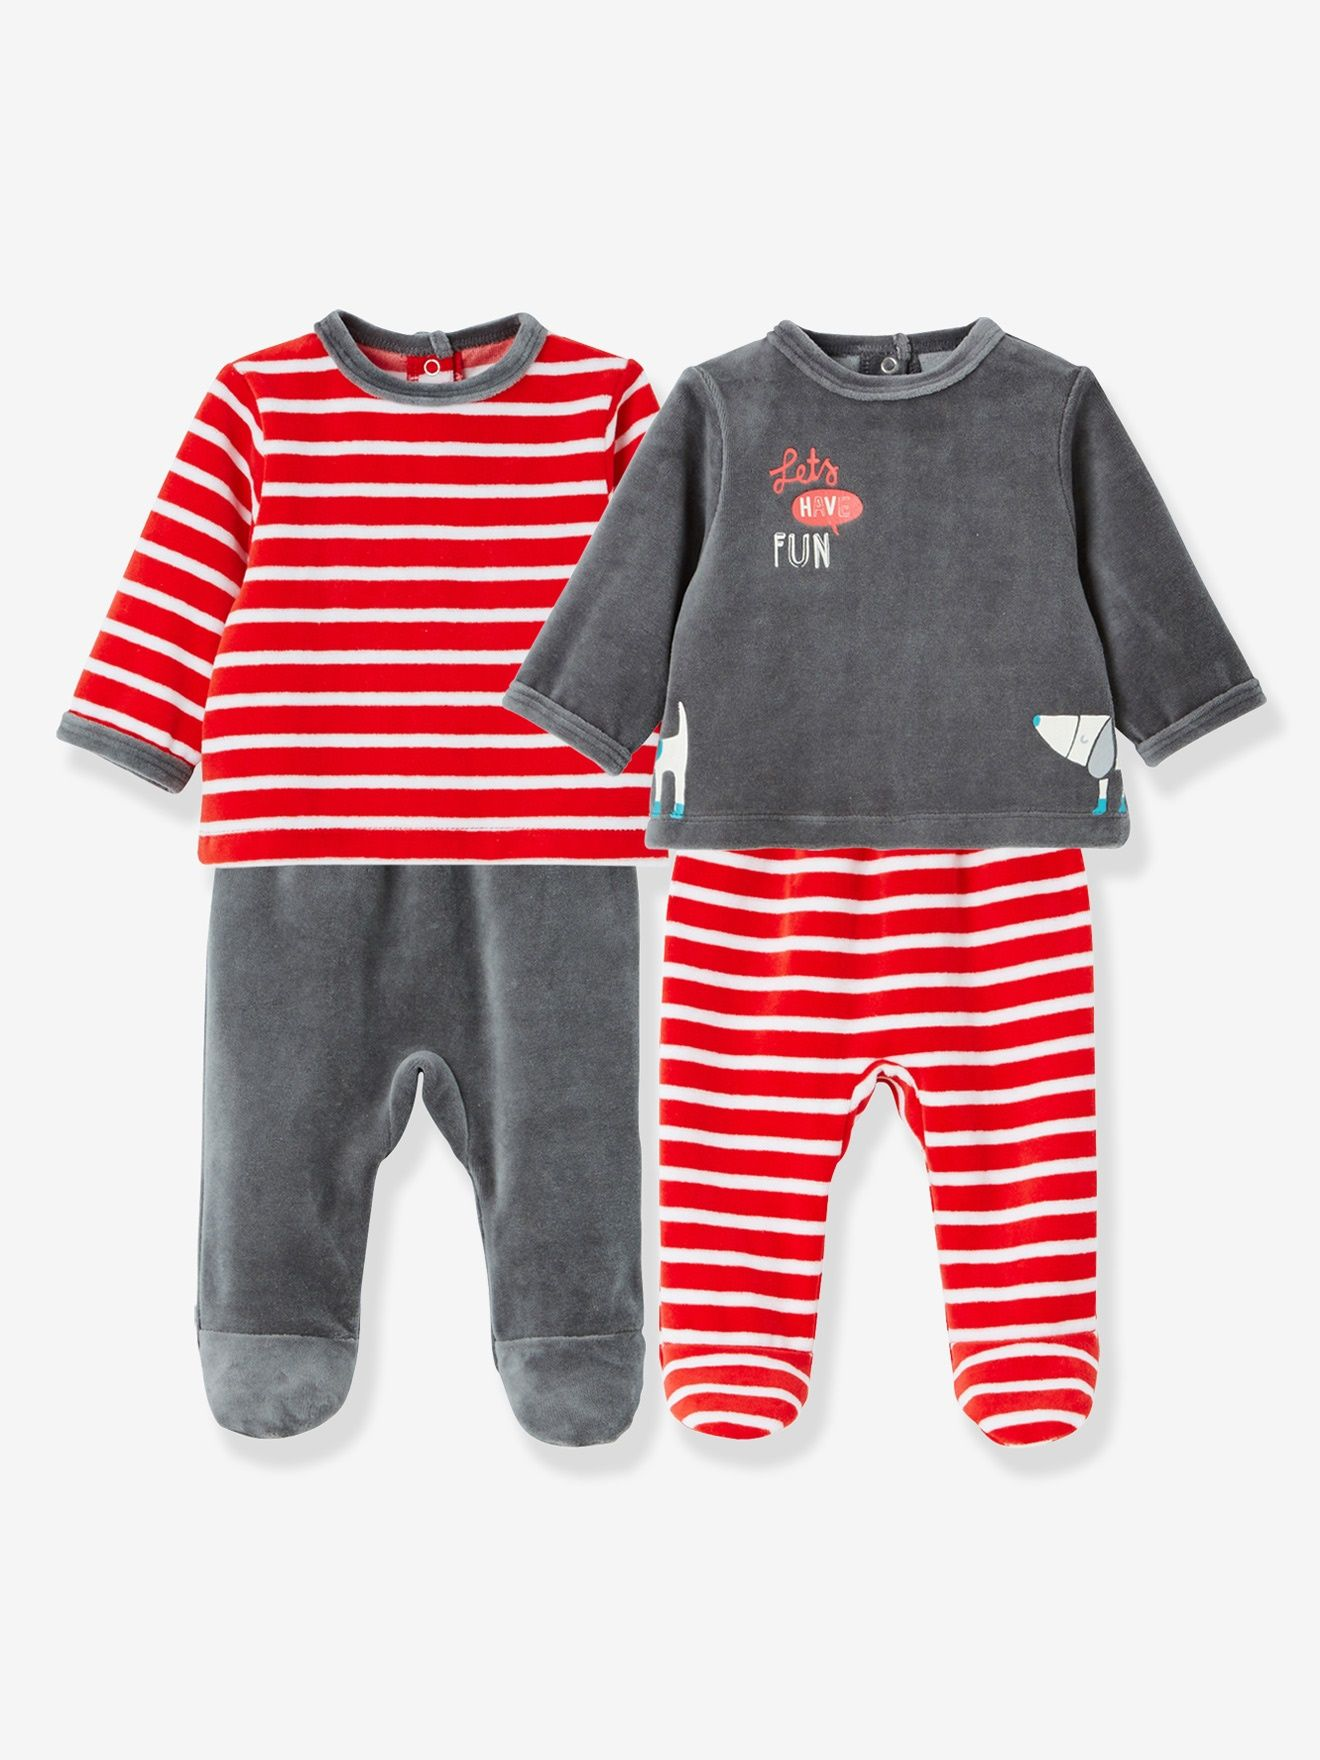 Pack of 2 Baby Two-Piece Pyjamas in Velour Fabric - red bright 2 color 853a577567996